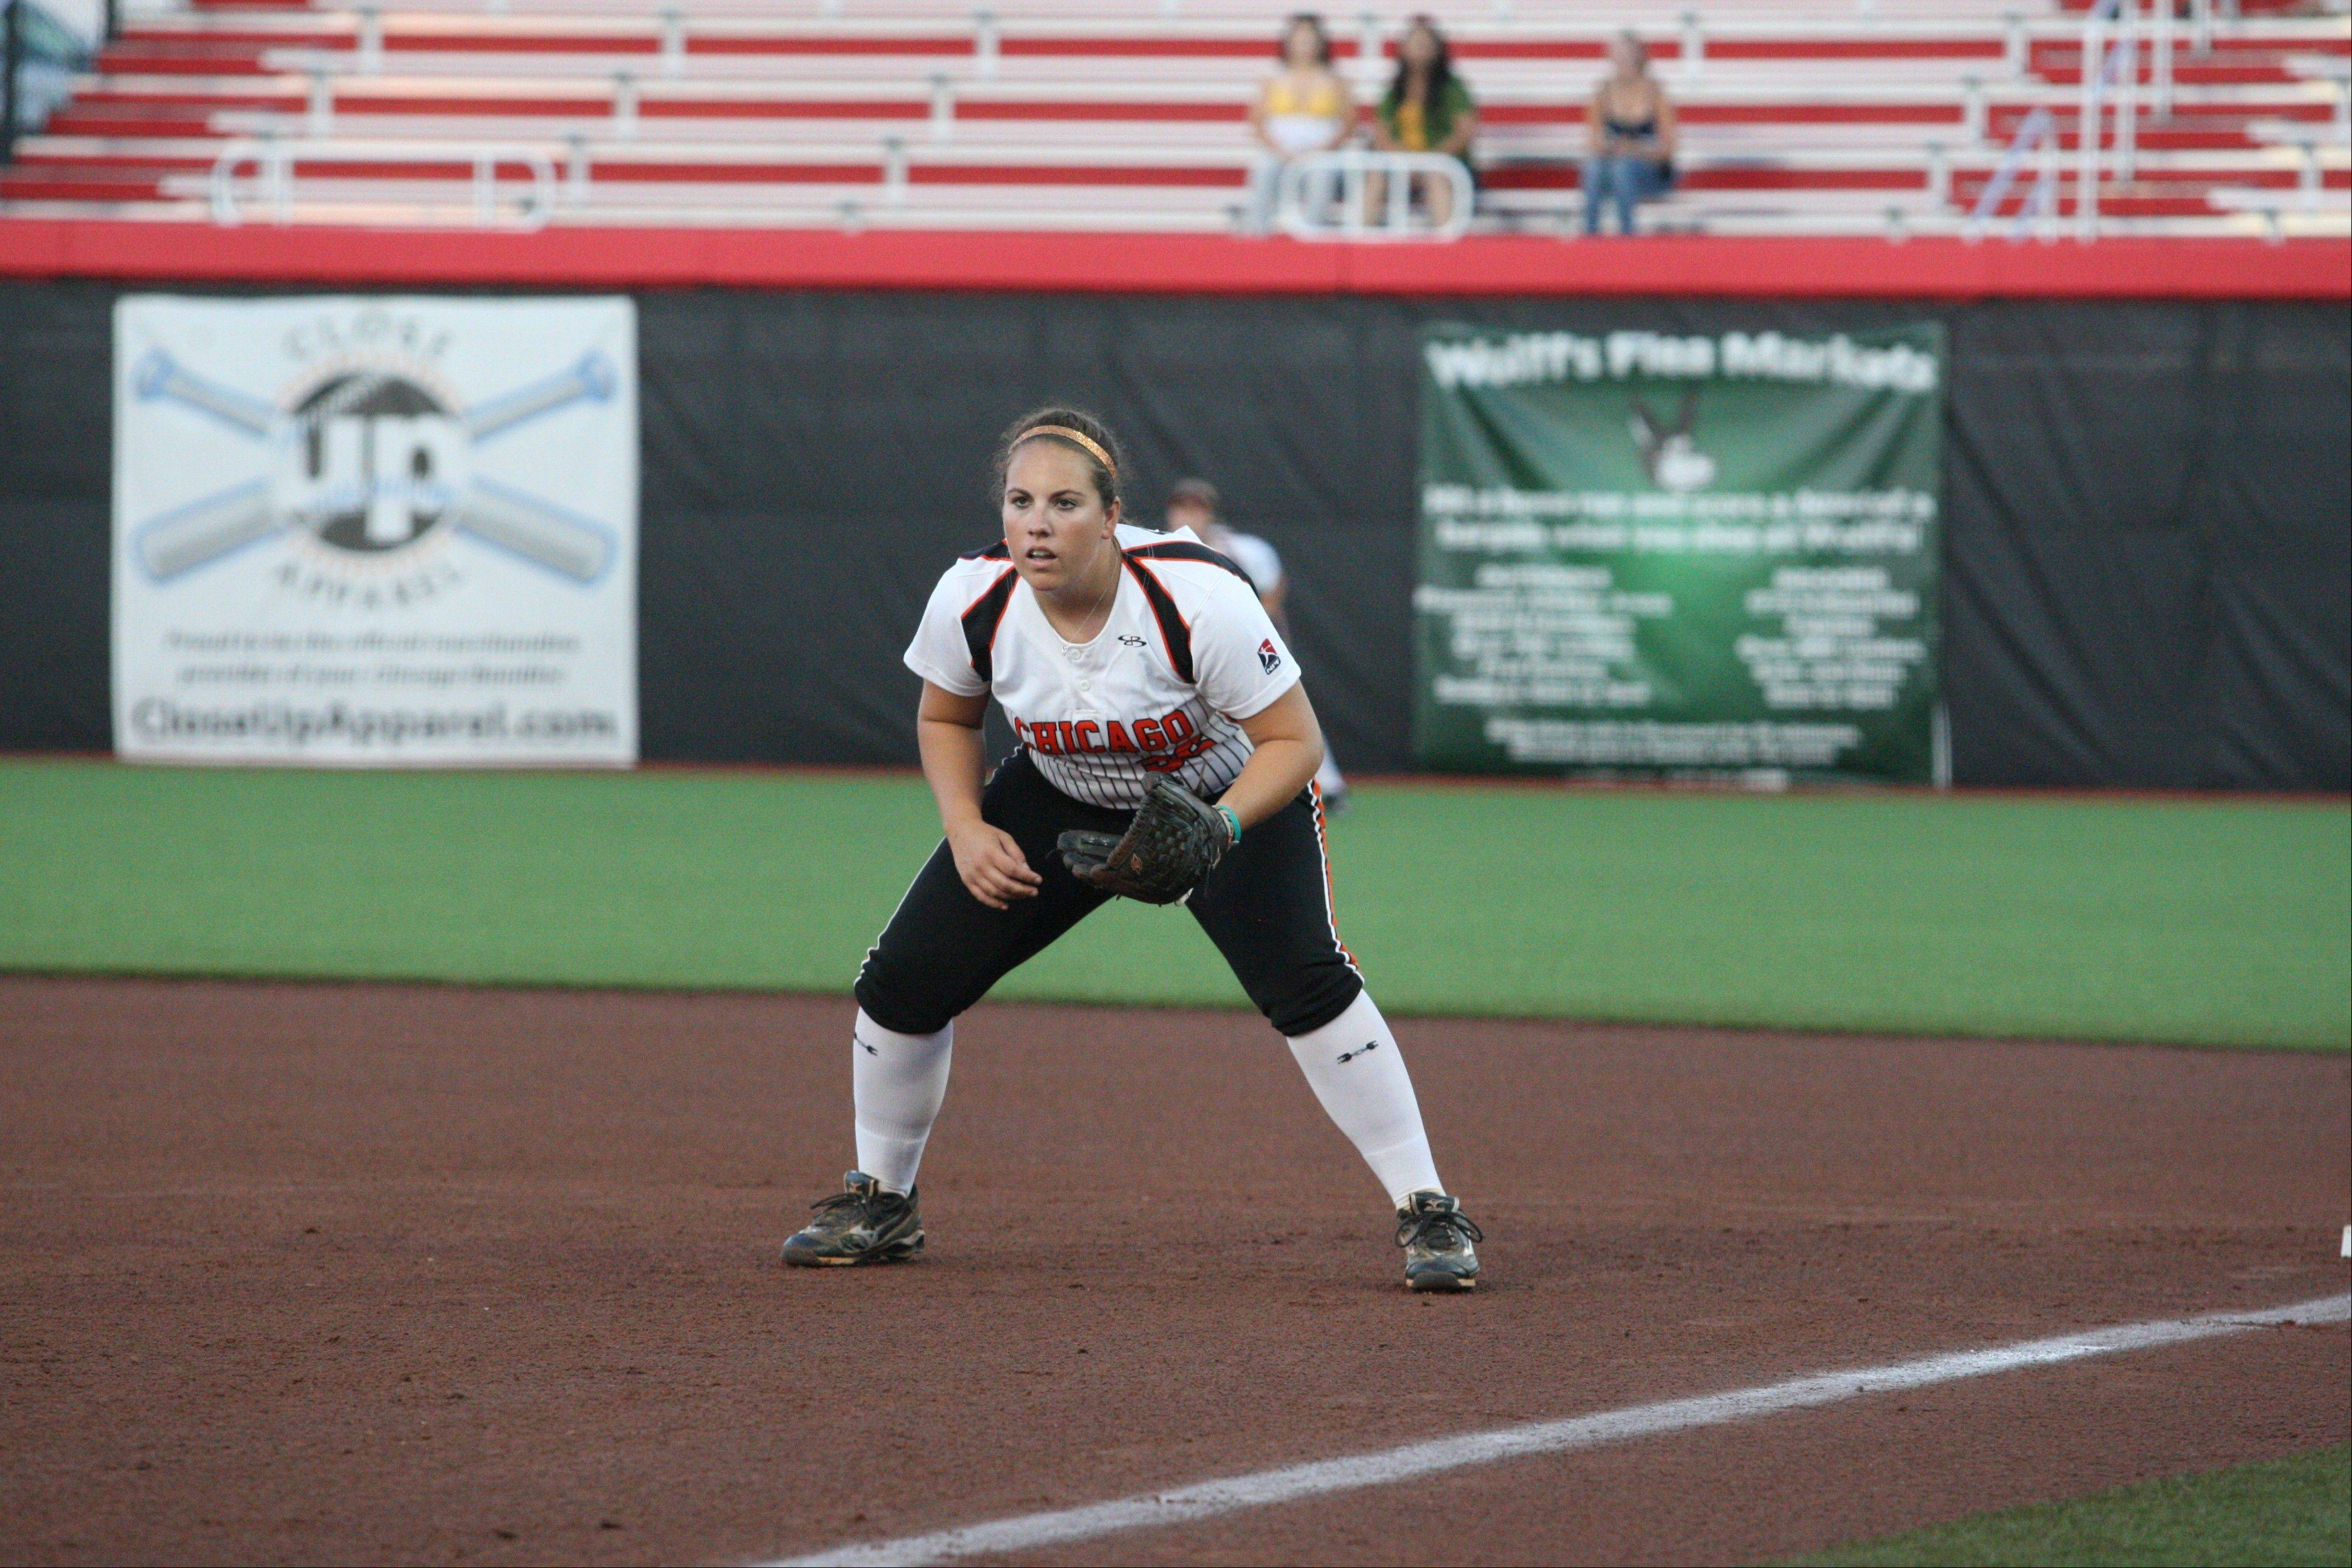 Bandits infielder Alisa Goler has made only 2 errors in her rookie season with the NPF club, and she leads the league in home runs and is fourth in hitting.